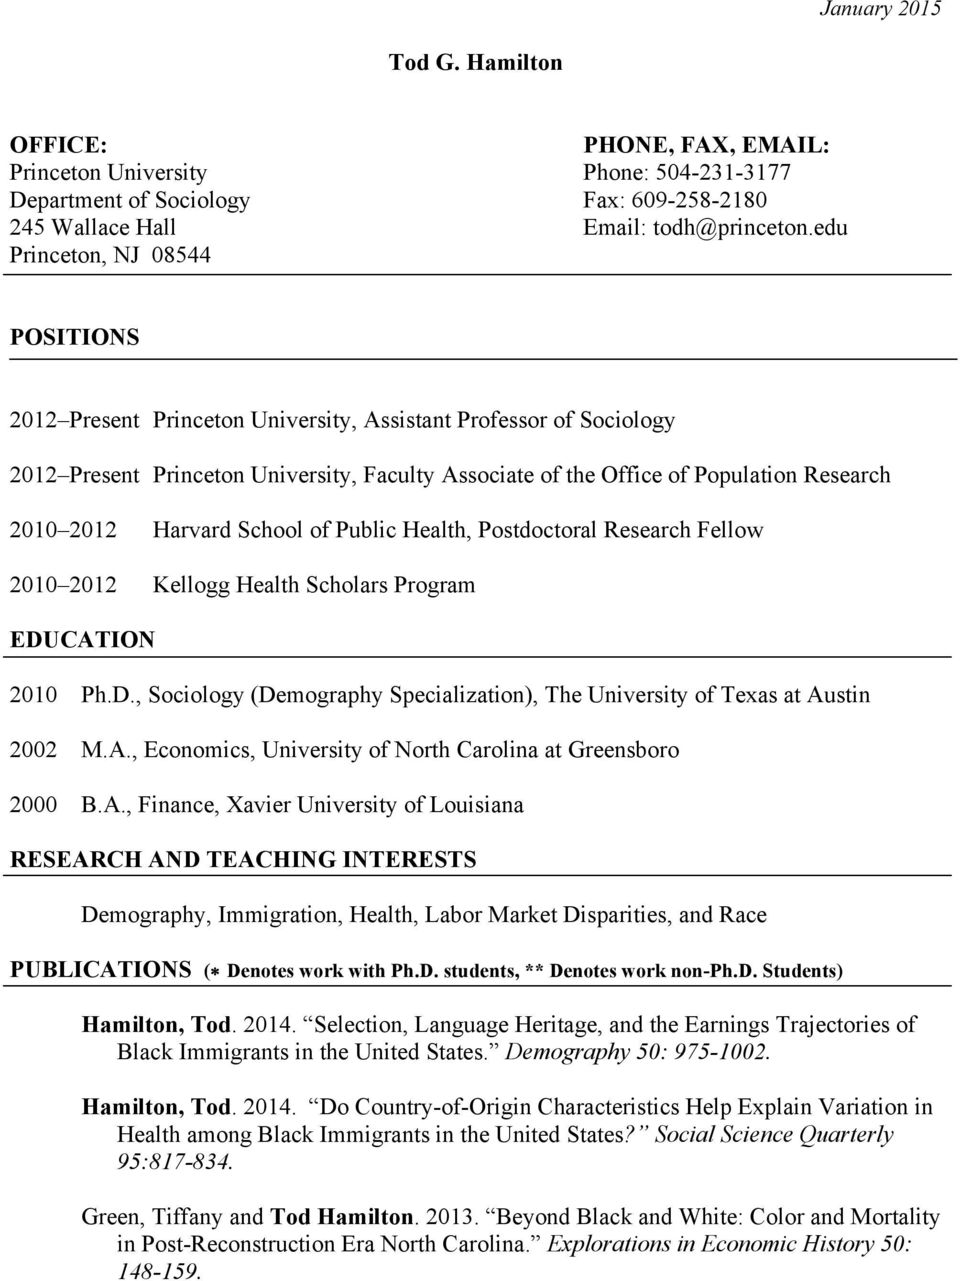 2012 Harvard School of Public Health, Postdoctoral Research Fellow 2010 2012 Kellogg Health Scholars Program EDUCATION 2010 Ph.D., Sociology (Demography Specialization), The University of Texas at Austin 2002 M.